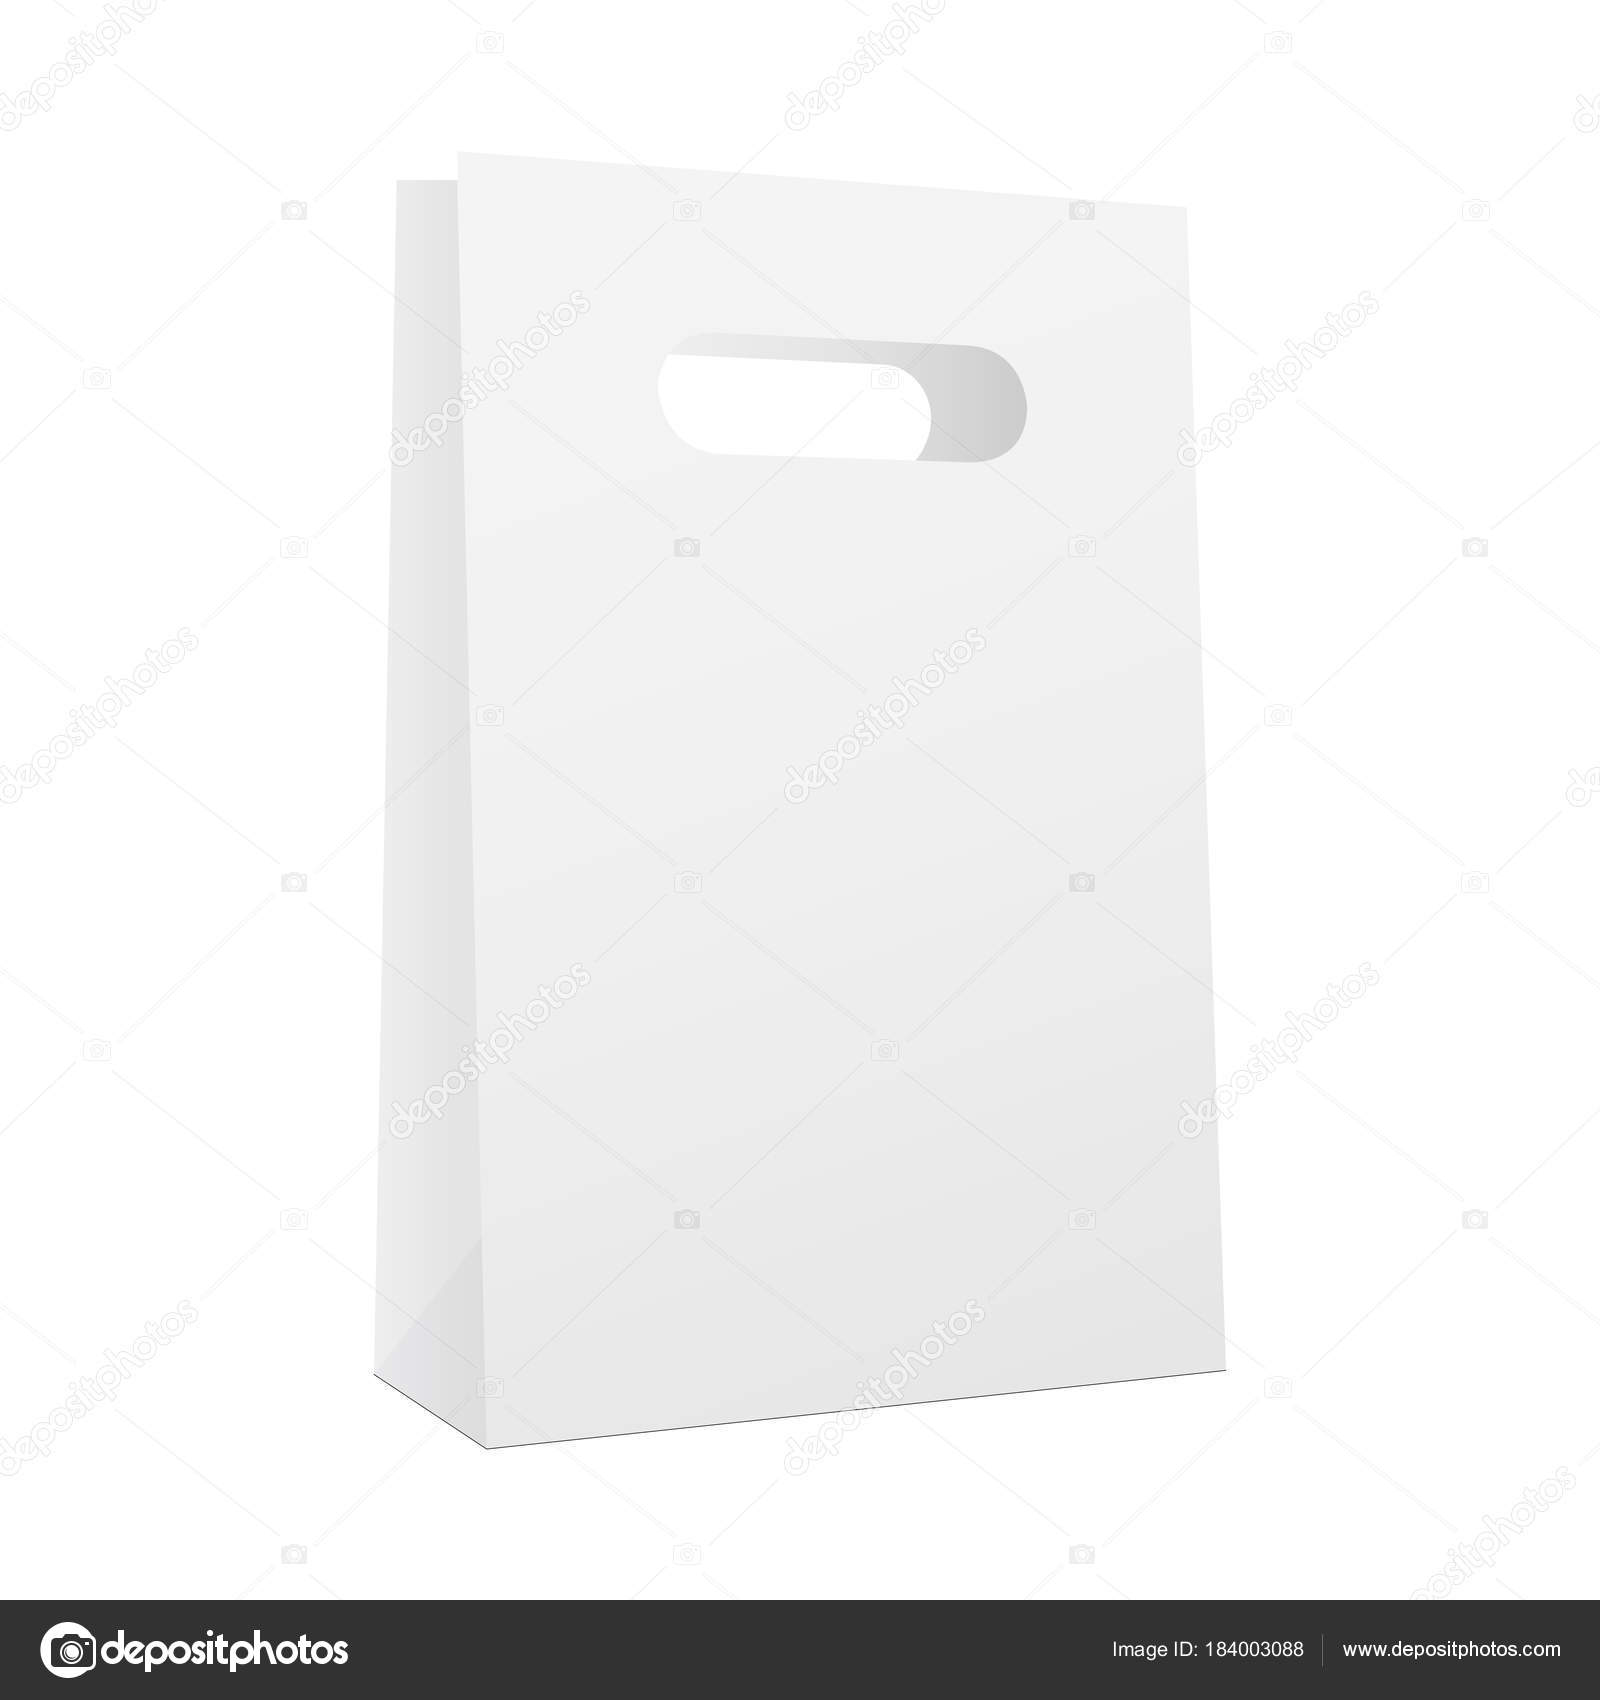 In order to do that, you need to have access to the biggest collections of ready. Paper Shopping Bag Mockup Stock Vector Image By C Evgeniyzimin 184003088